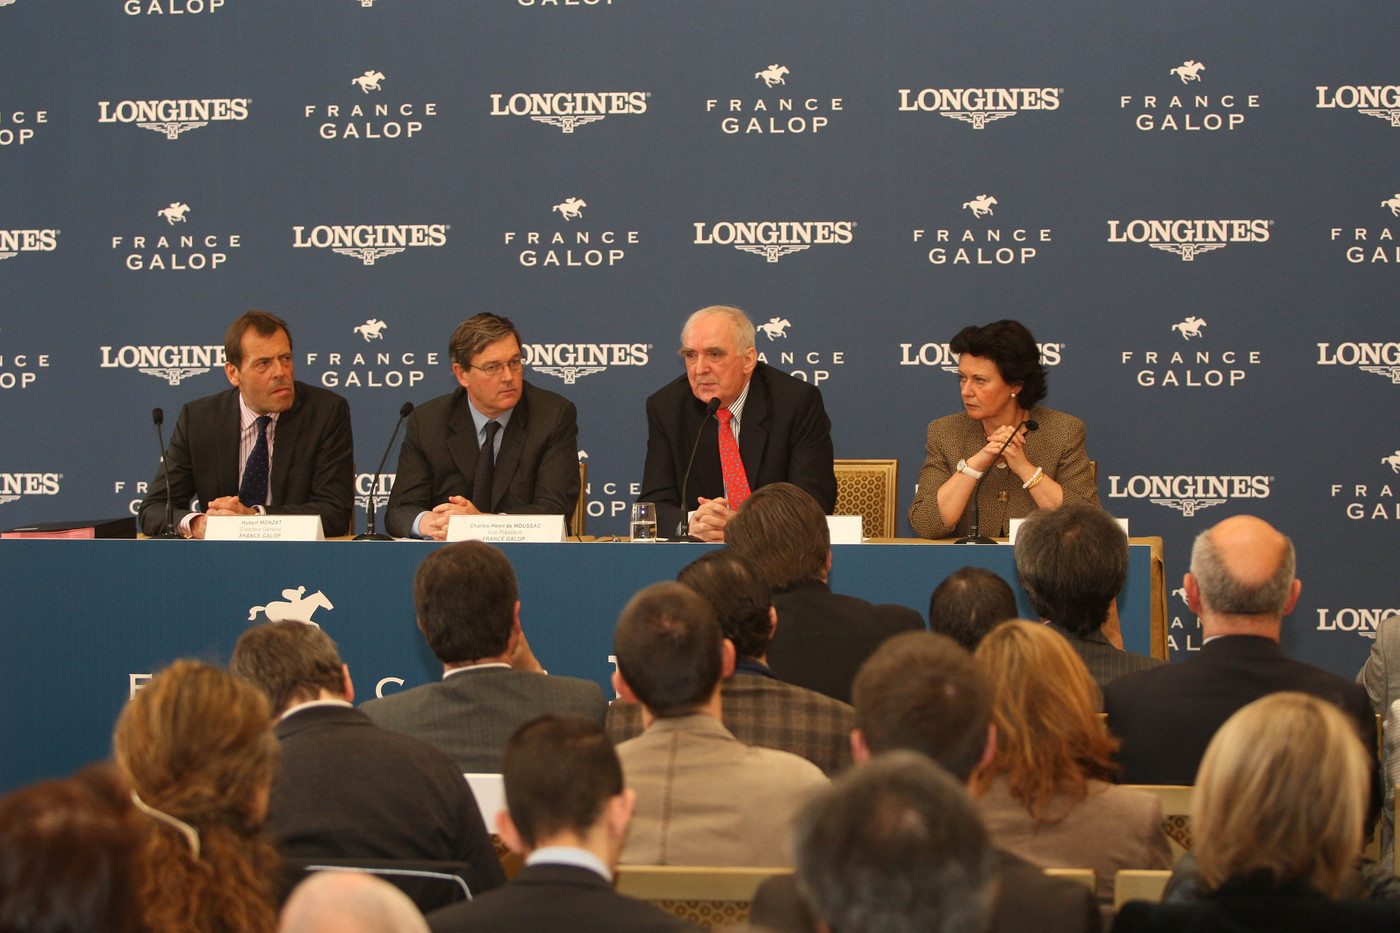 Longines Flat Racing Event: Longines and France Galop – A partnership of tradition and elegance 2